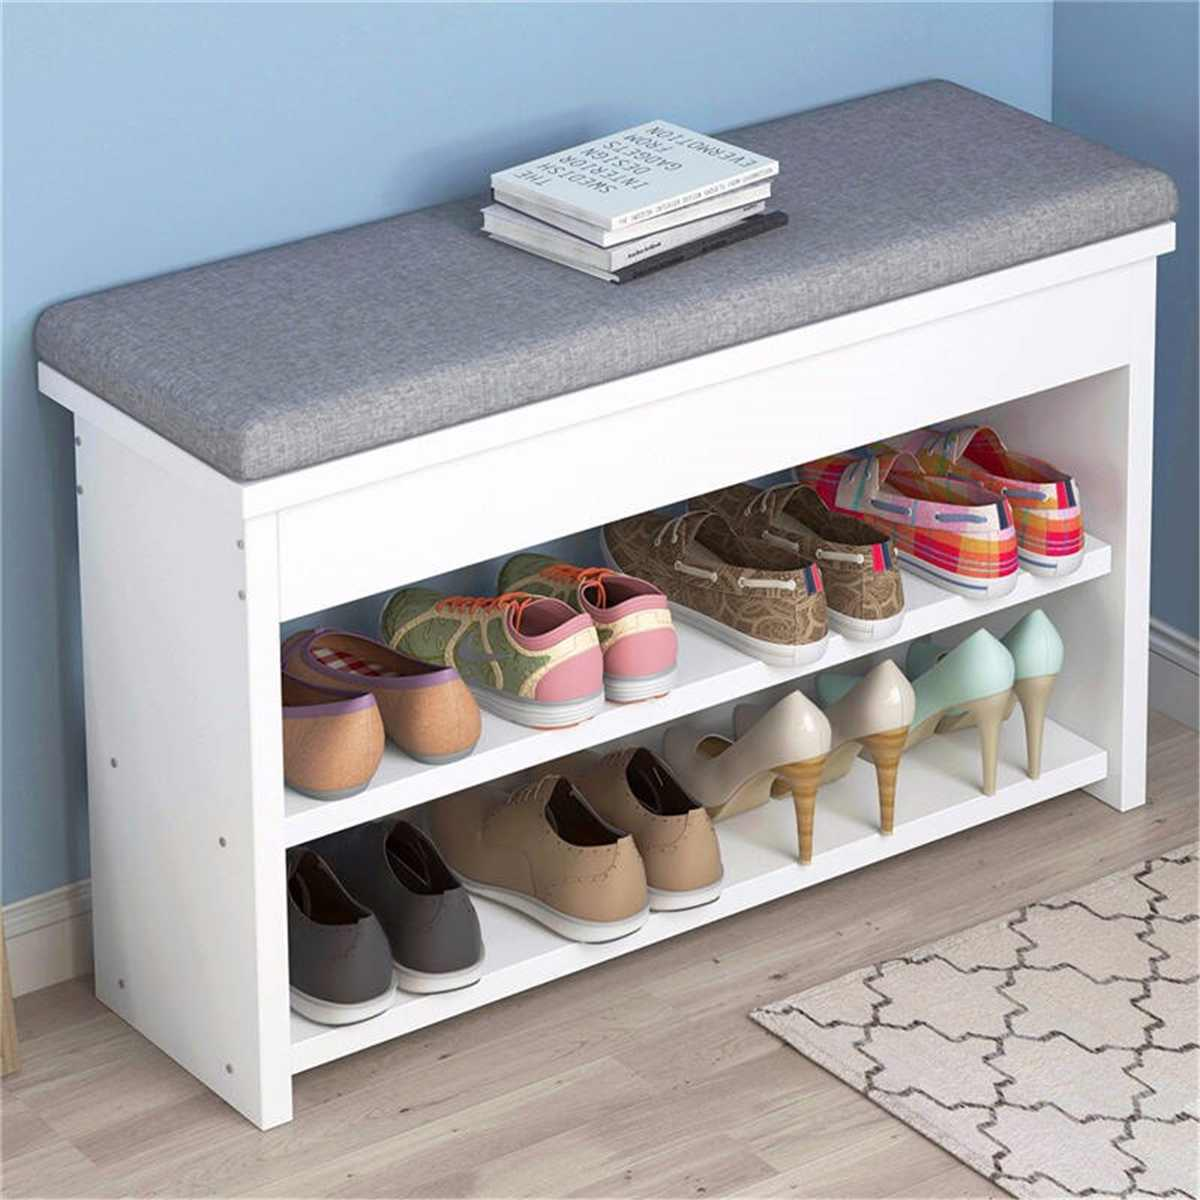 2 Tier Shoe Storage Stool Living Room Shoe Rack Simple Change Shoe Bench Organizer Cabinet Hallway Seat Chair Shelf Holder